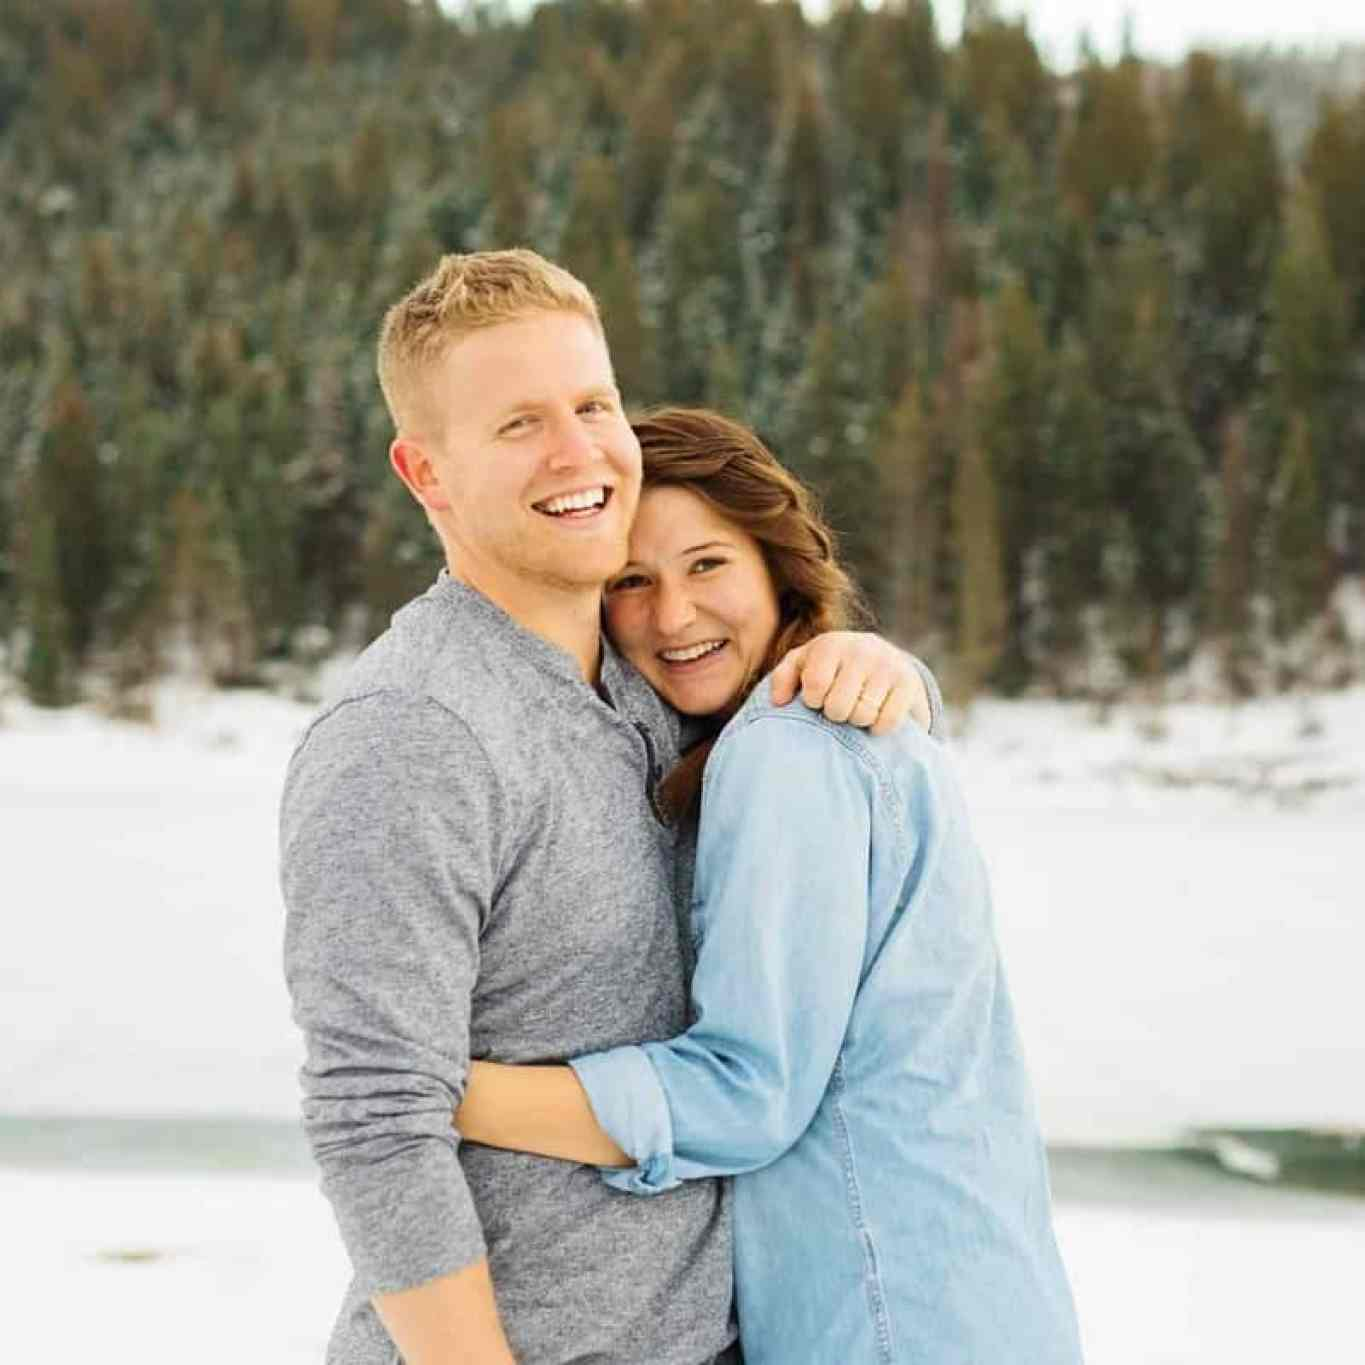 Dallin and Ashley stand hugging in front of a line of trees and snow on the ground.